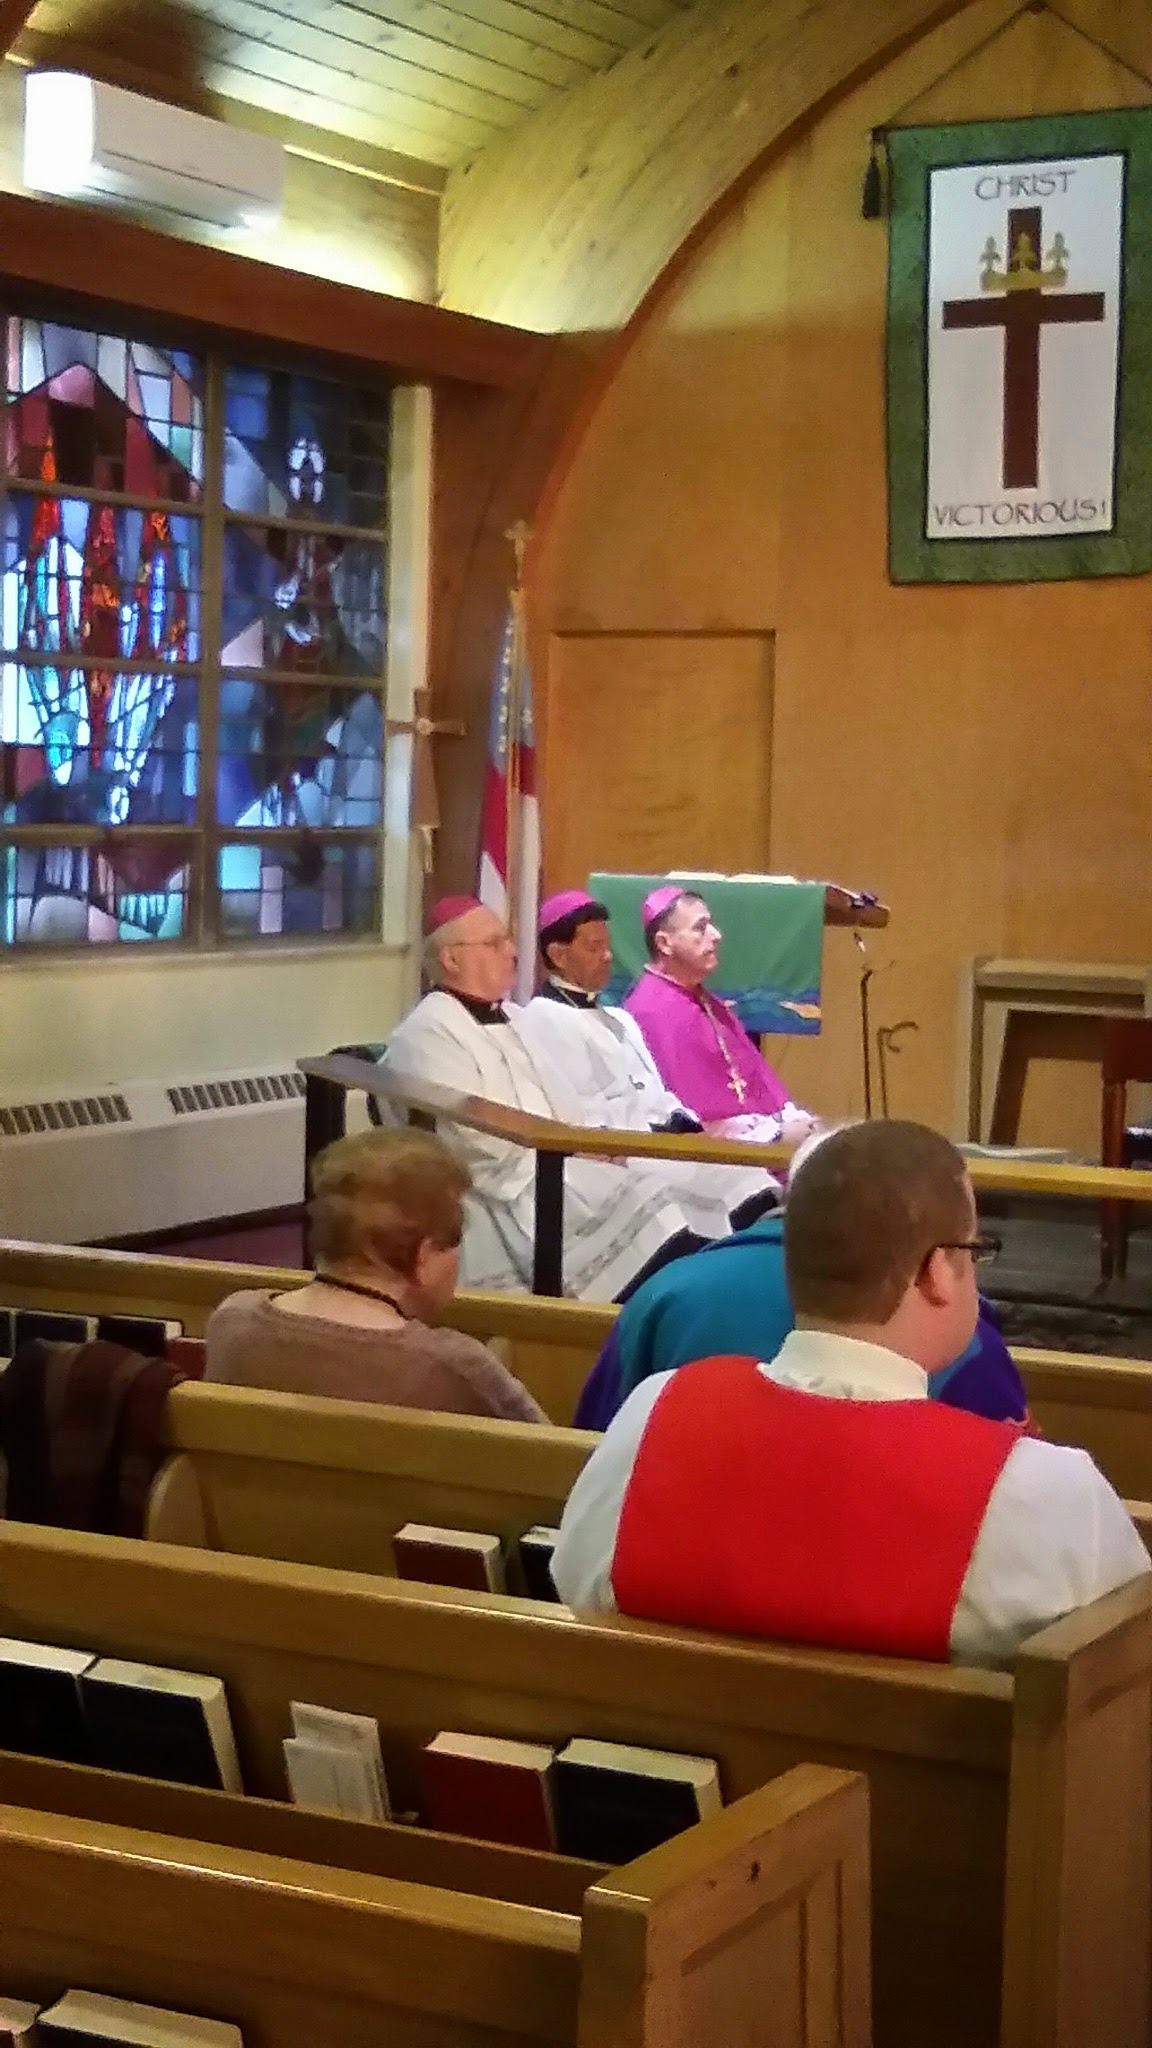 Bishops sitting in choir